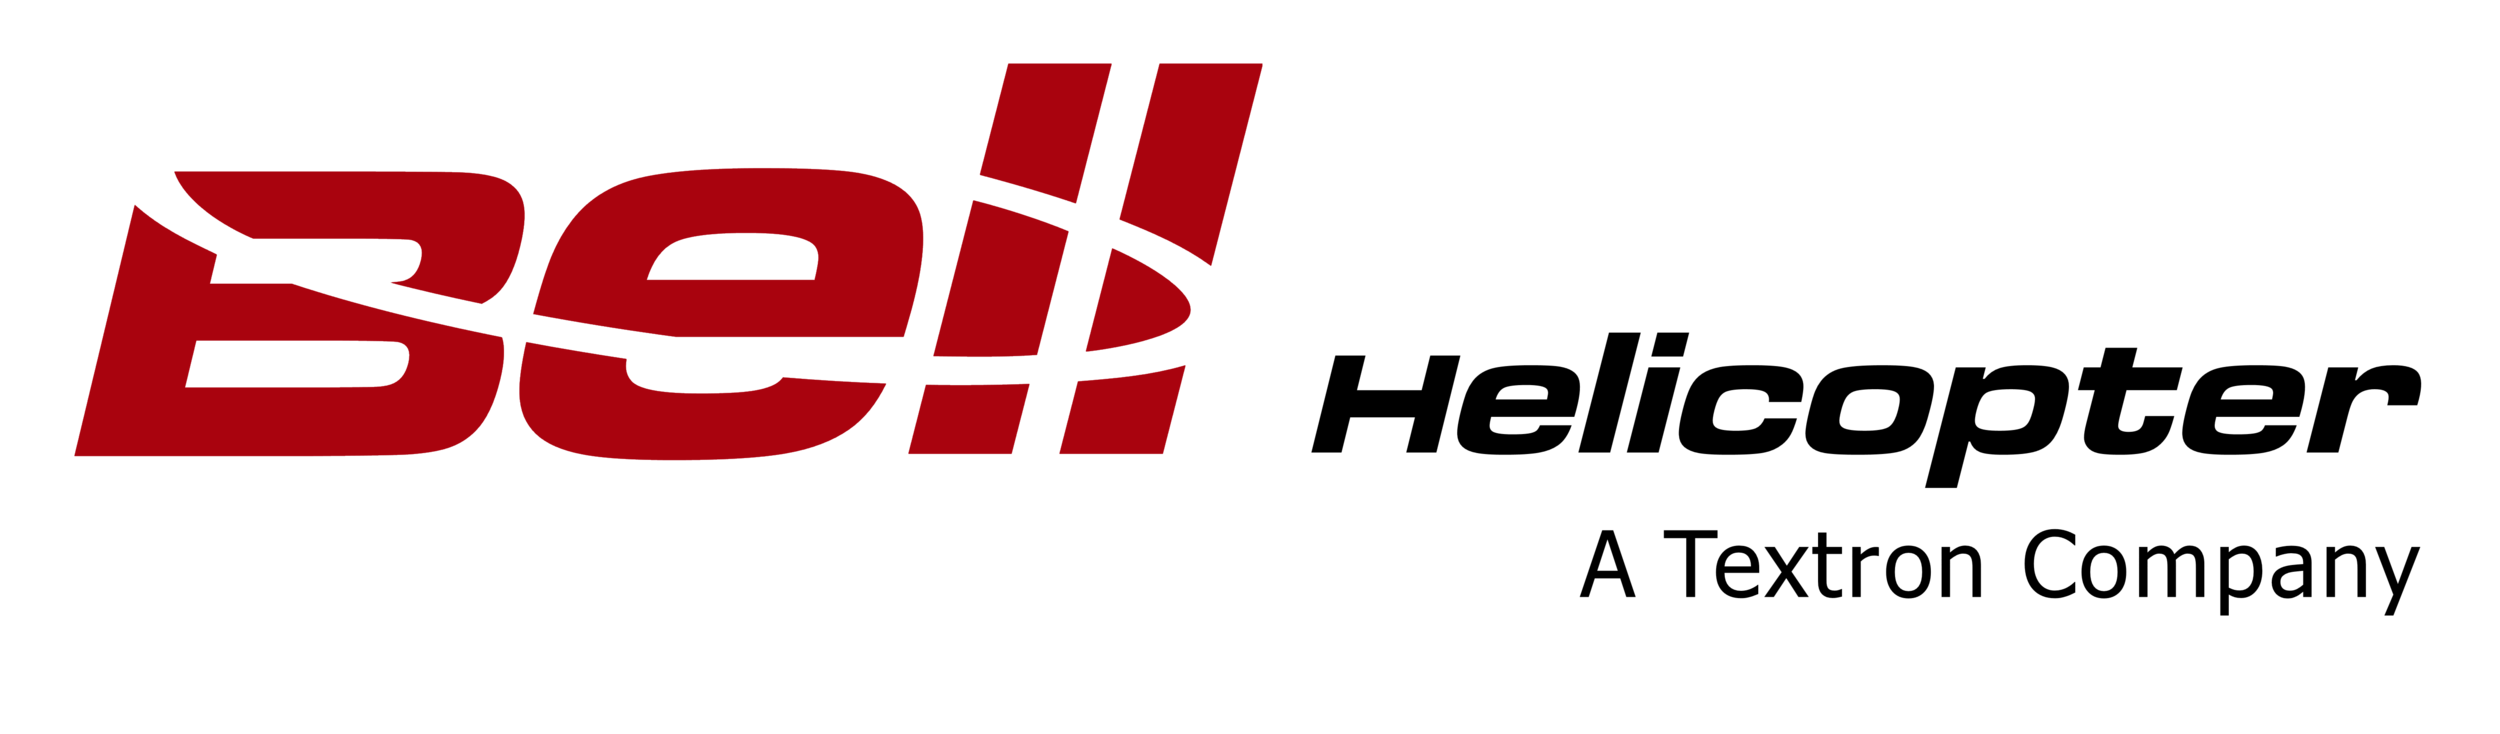 Bell_Helicopter_logo.png